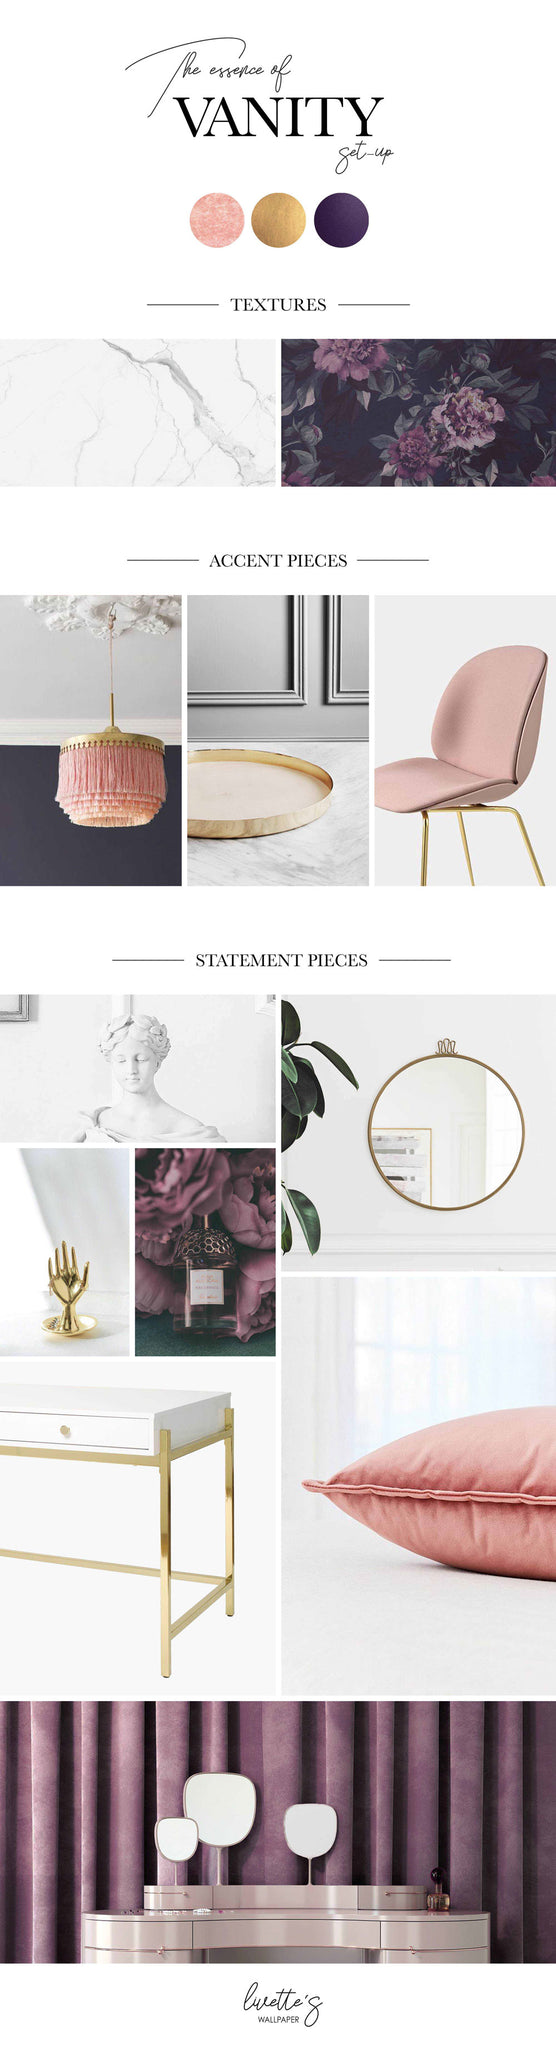 Interior mood board with dark floral wallpaper and marble patterns, pink lamp, chair and velvet pillow